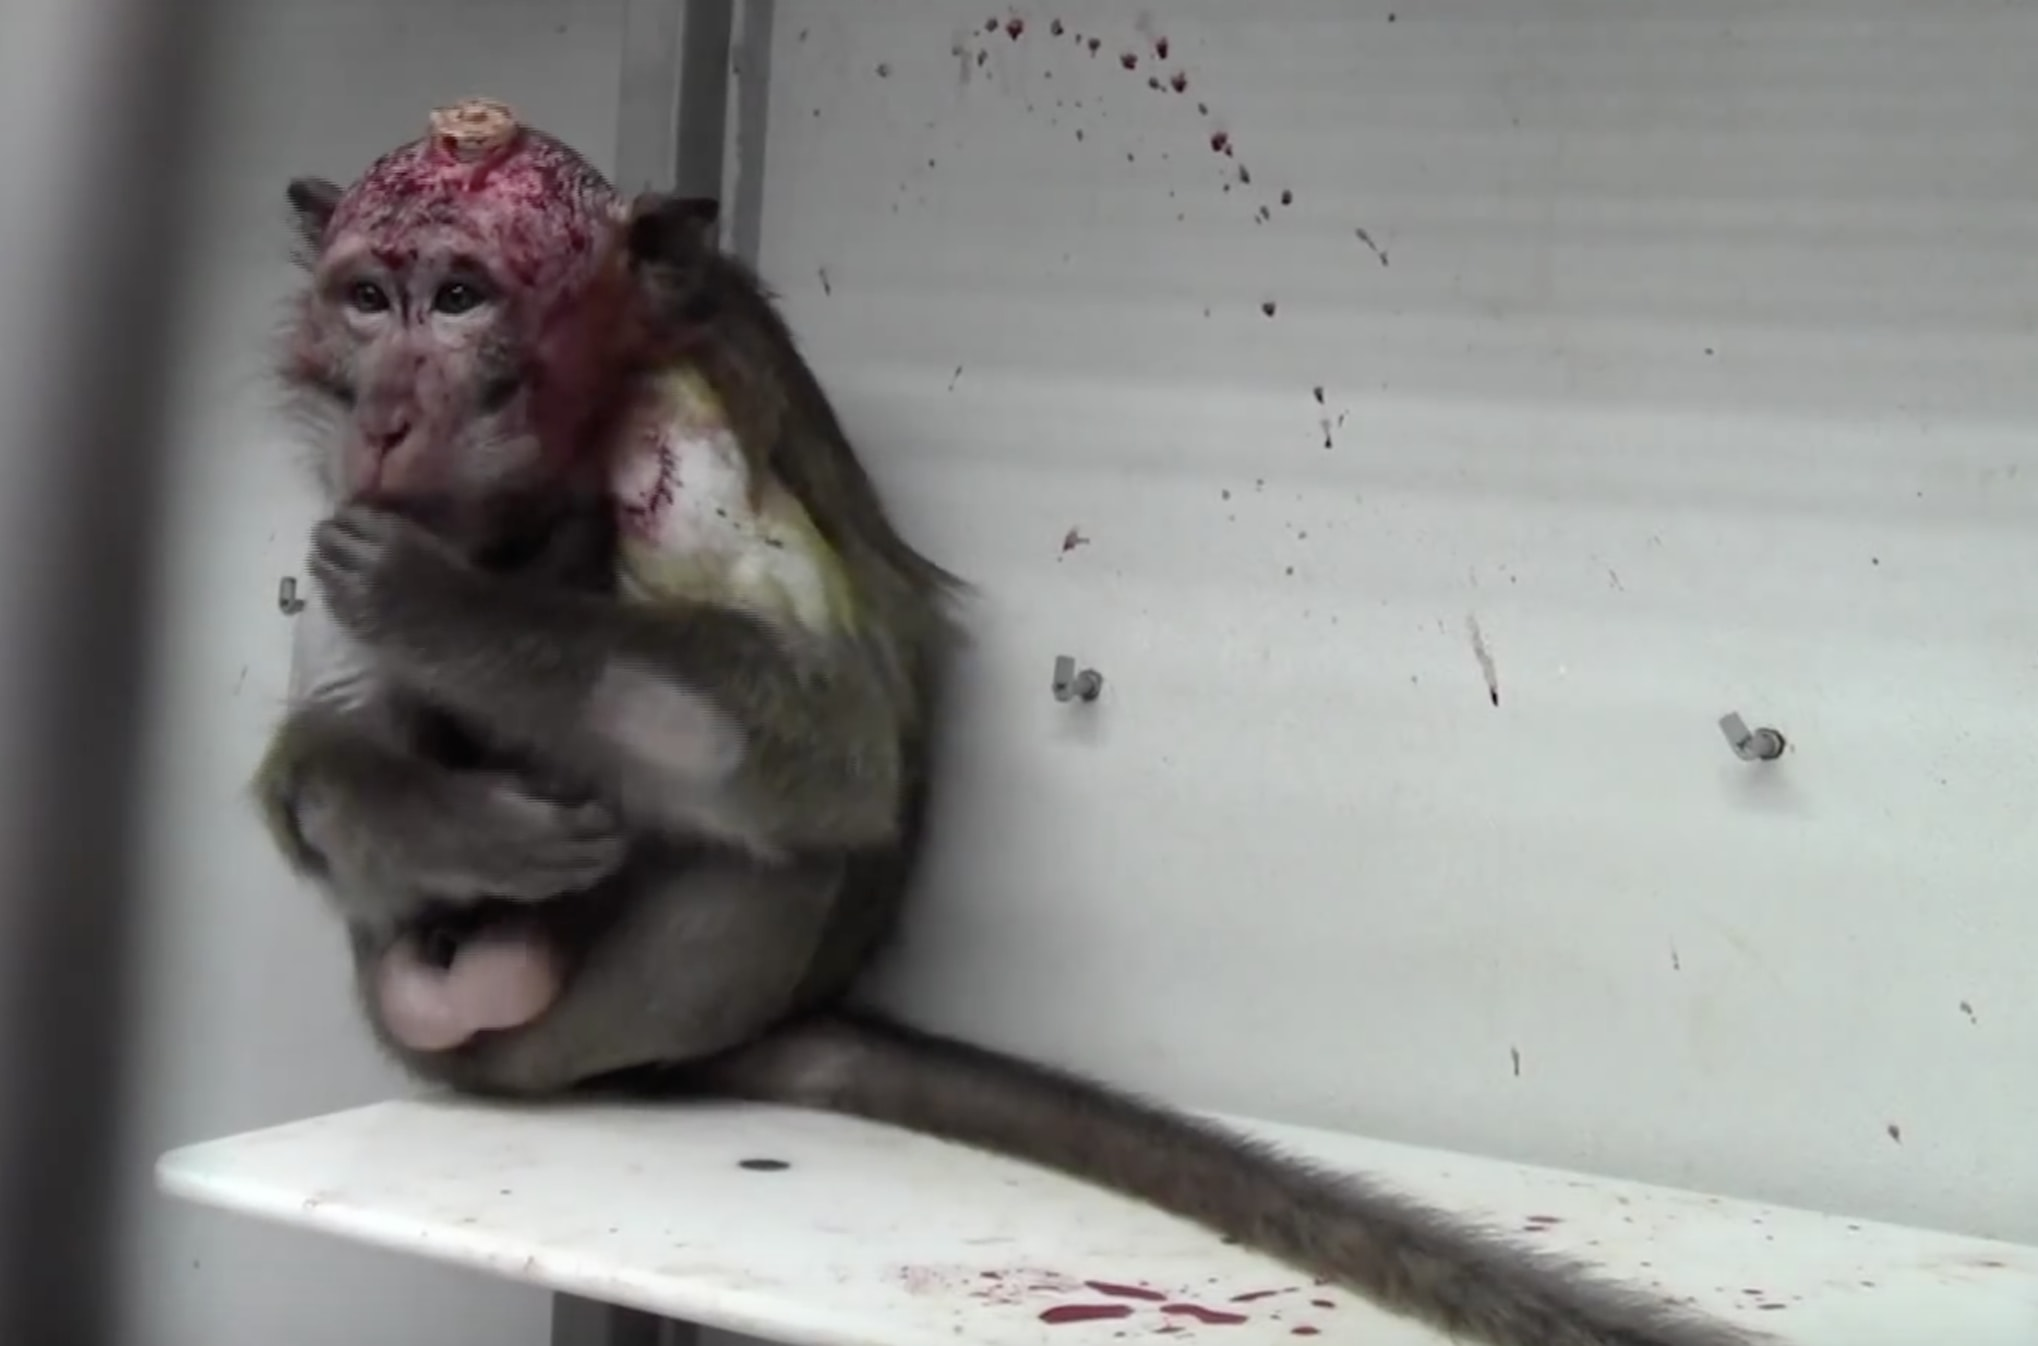 Monkey cruelty at Max Planck Institute for Biological Cybernetics